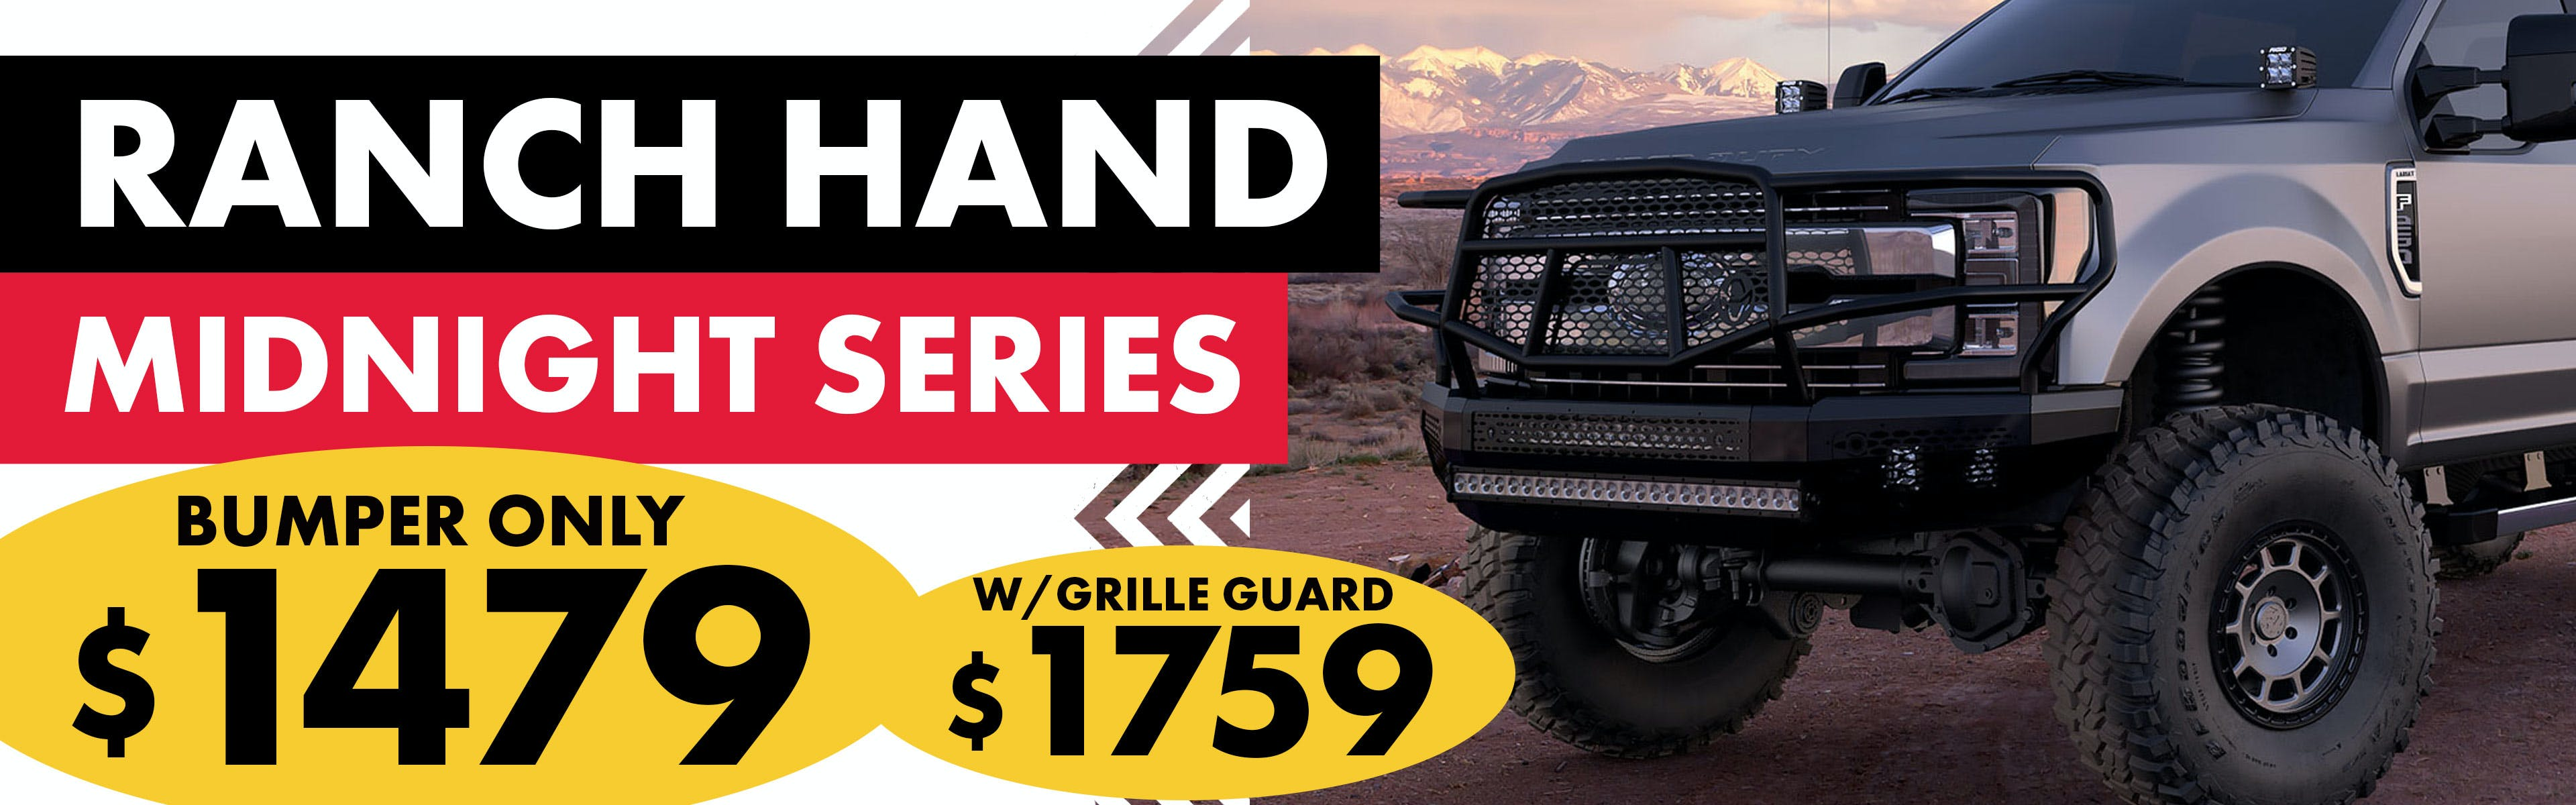 Ranch Hand Midnight Series Bumpers